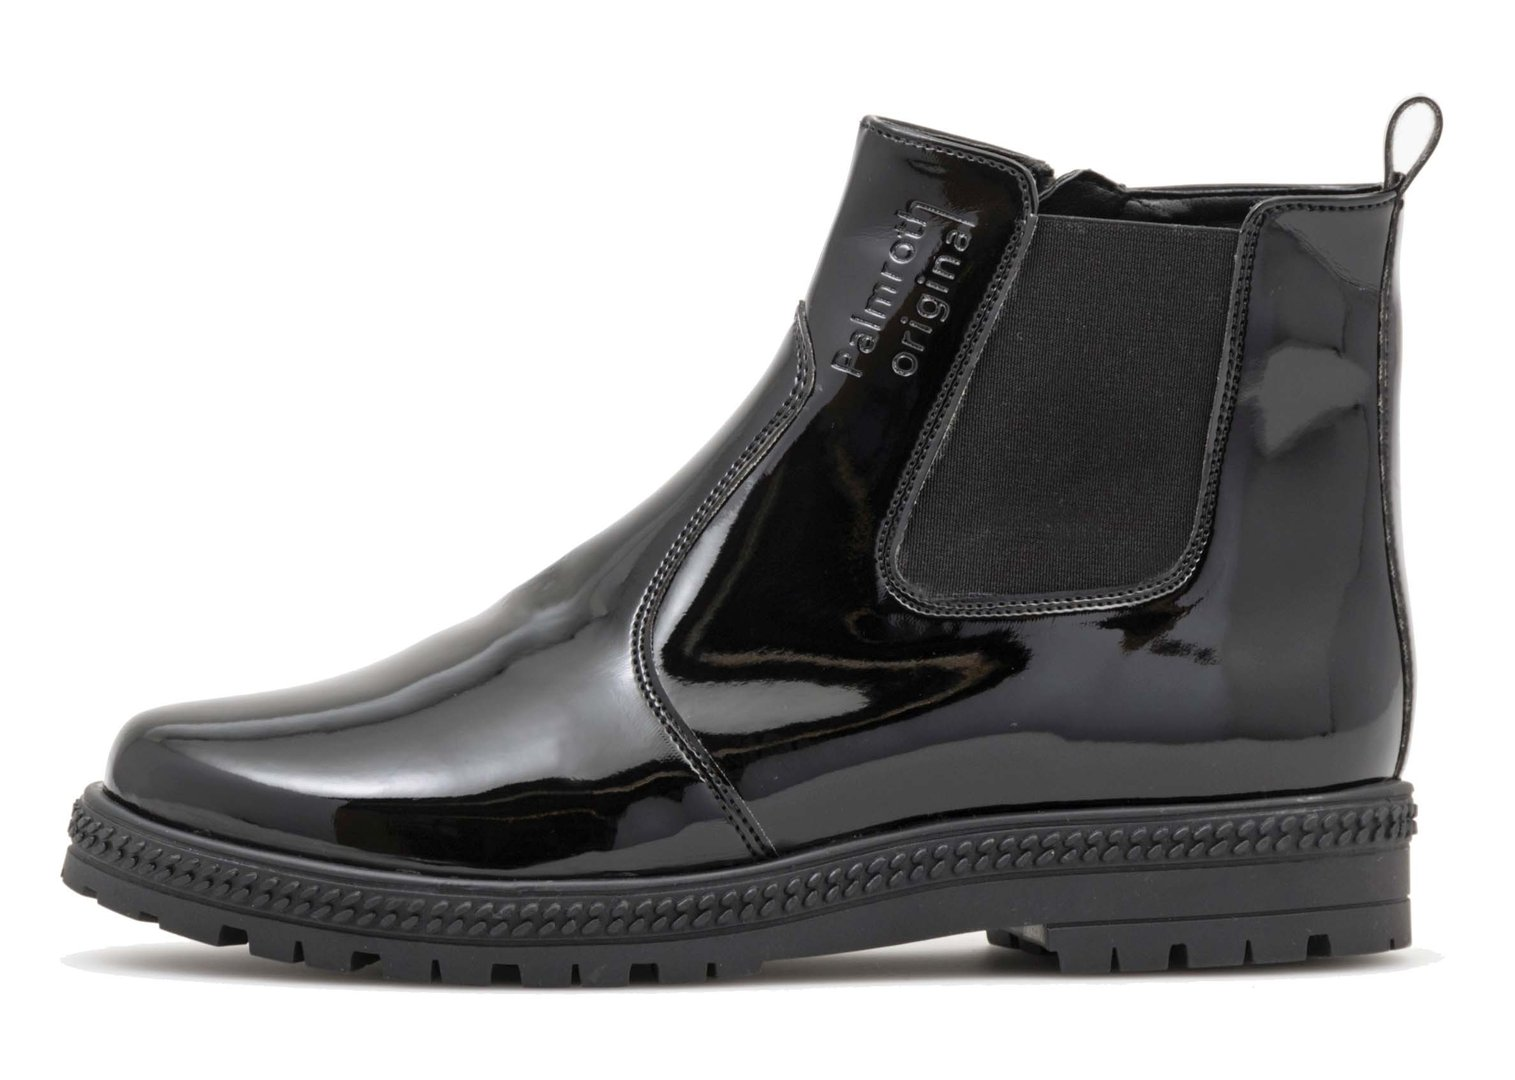 Chelsea boot with zipper 83163 - High